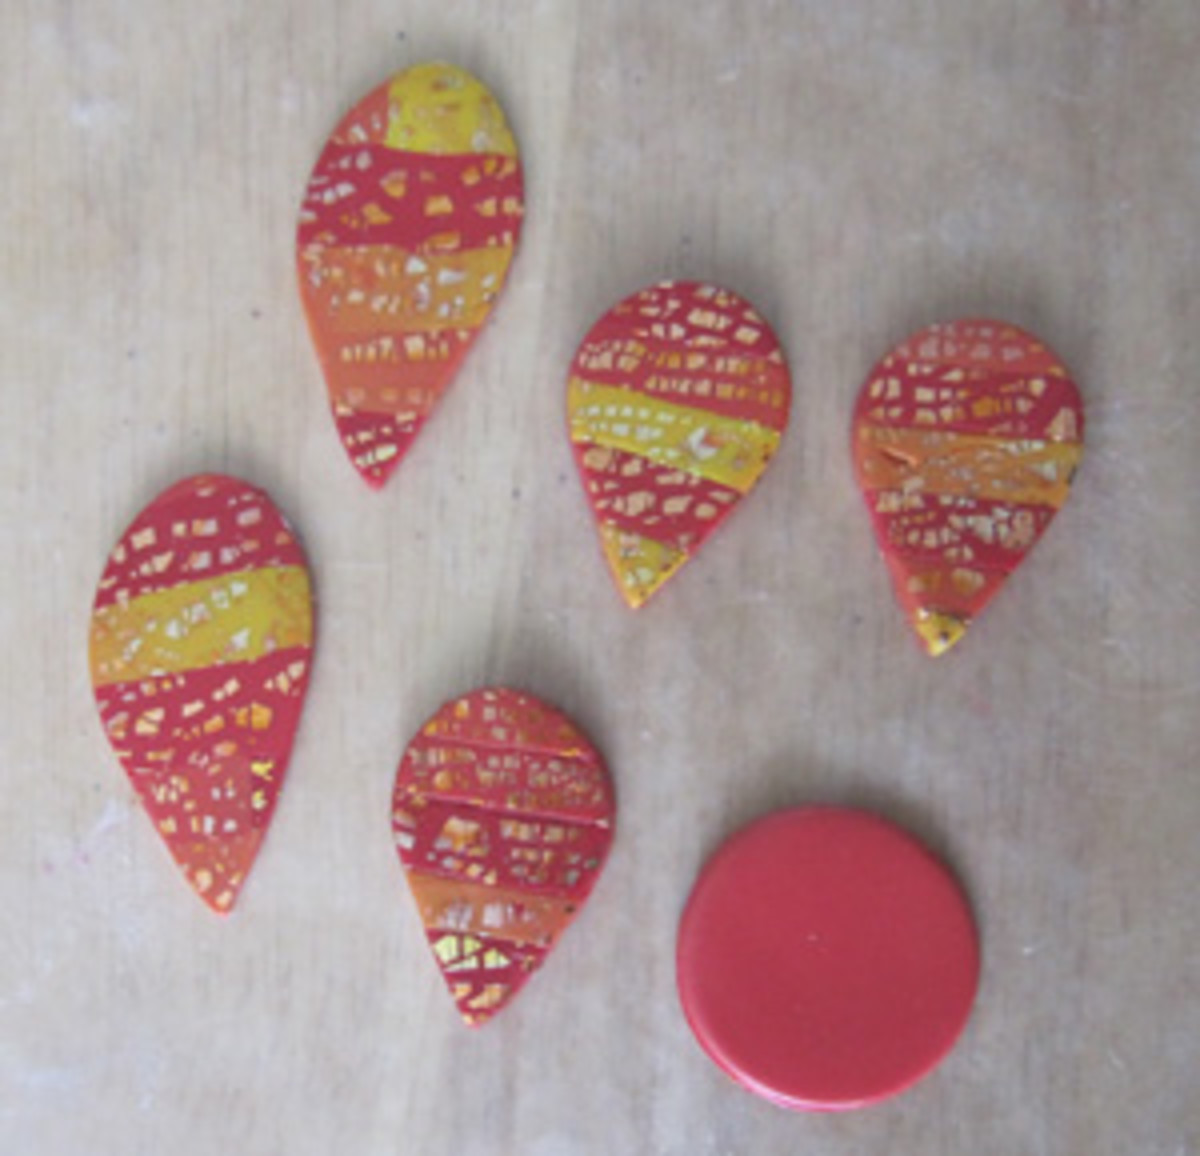 Cut out the polymer clay flower petals with a teardrop shaped clay cutter and elongate the petals, if desired.